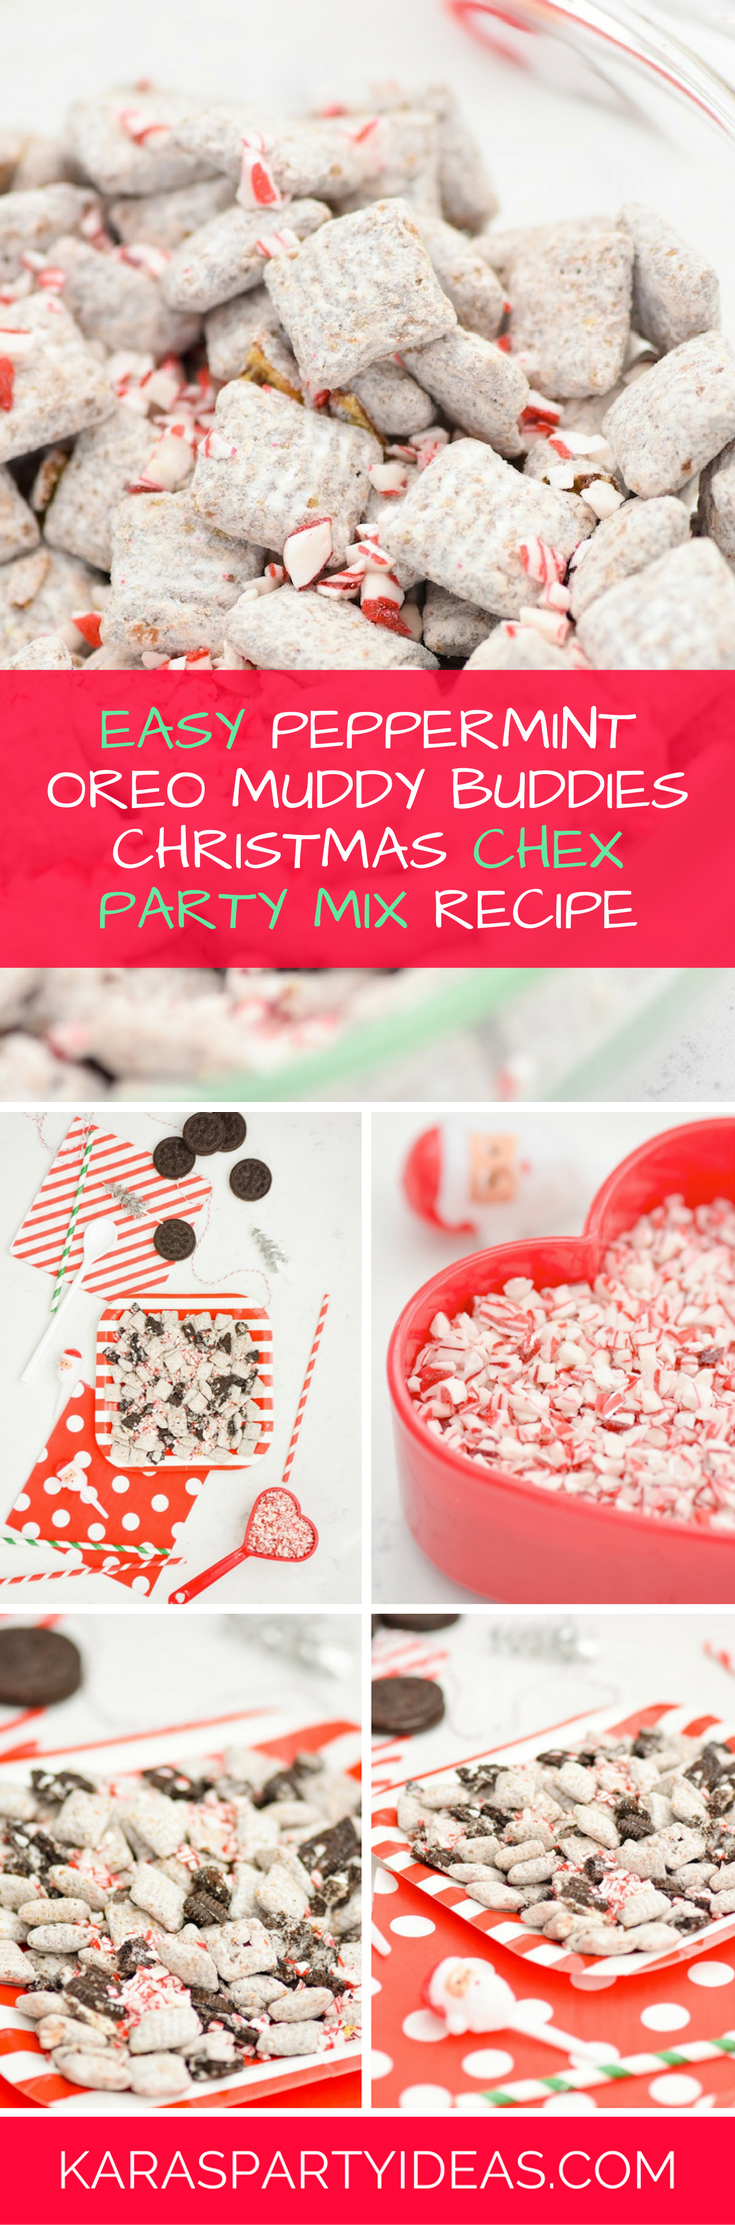 Easy Peppermint Oreo Muddy Buddies Christmas Chex Party Mix Recipe via Kara's Party Ideas - KarasPartyIdeas.com